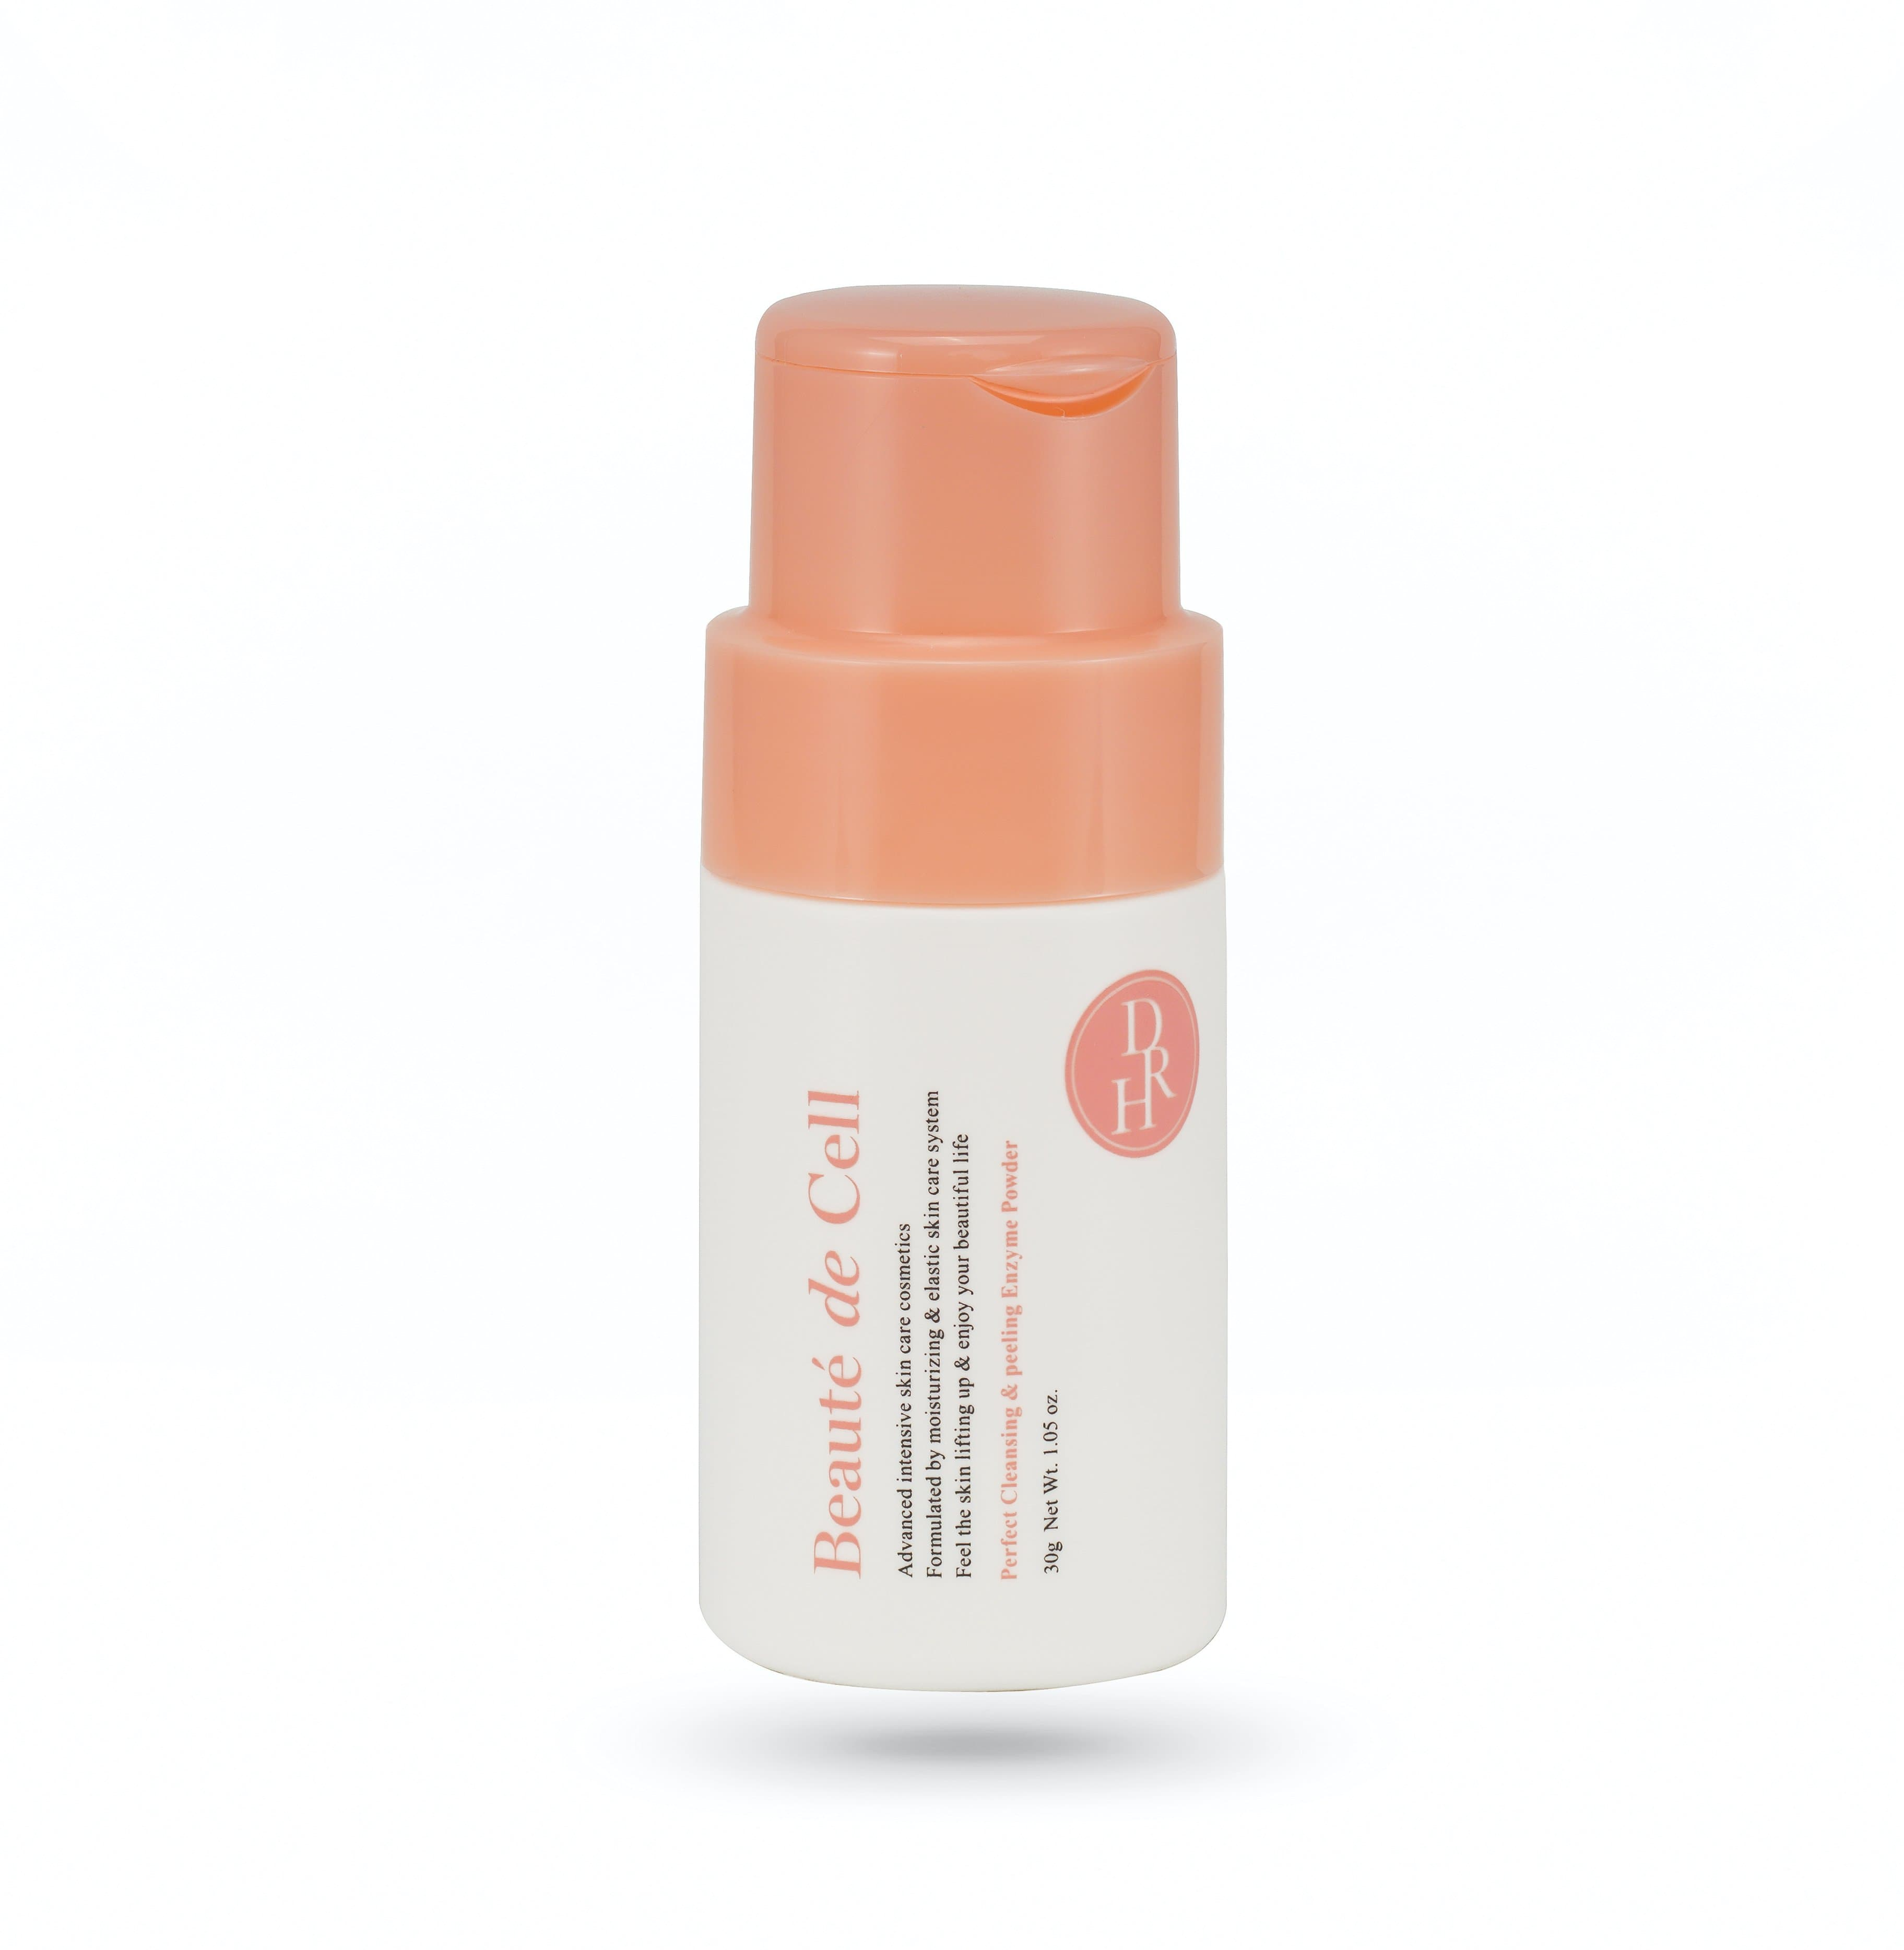 Perfect Cleansing & Peeling Enzyme - Beauté De Cell - Science To Skin